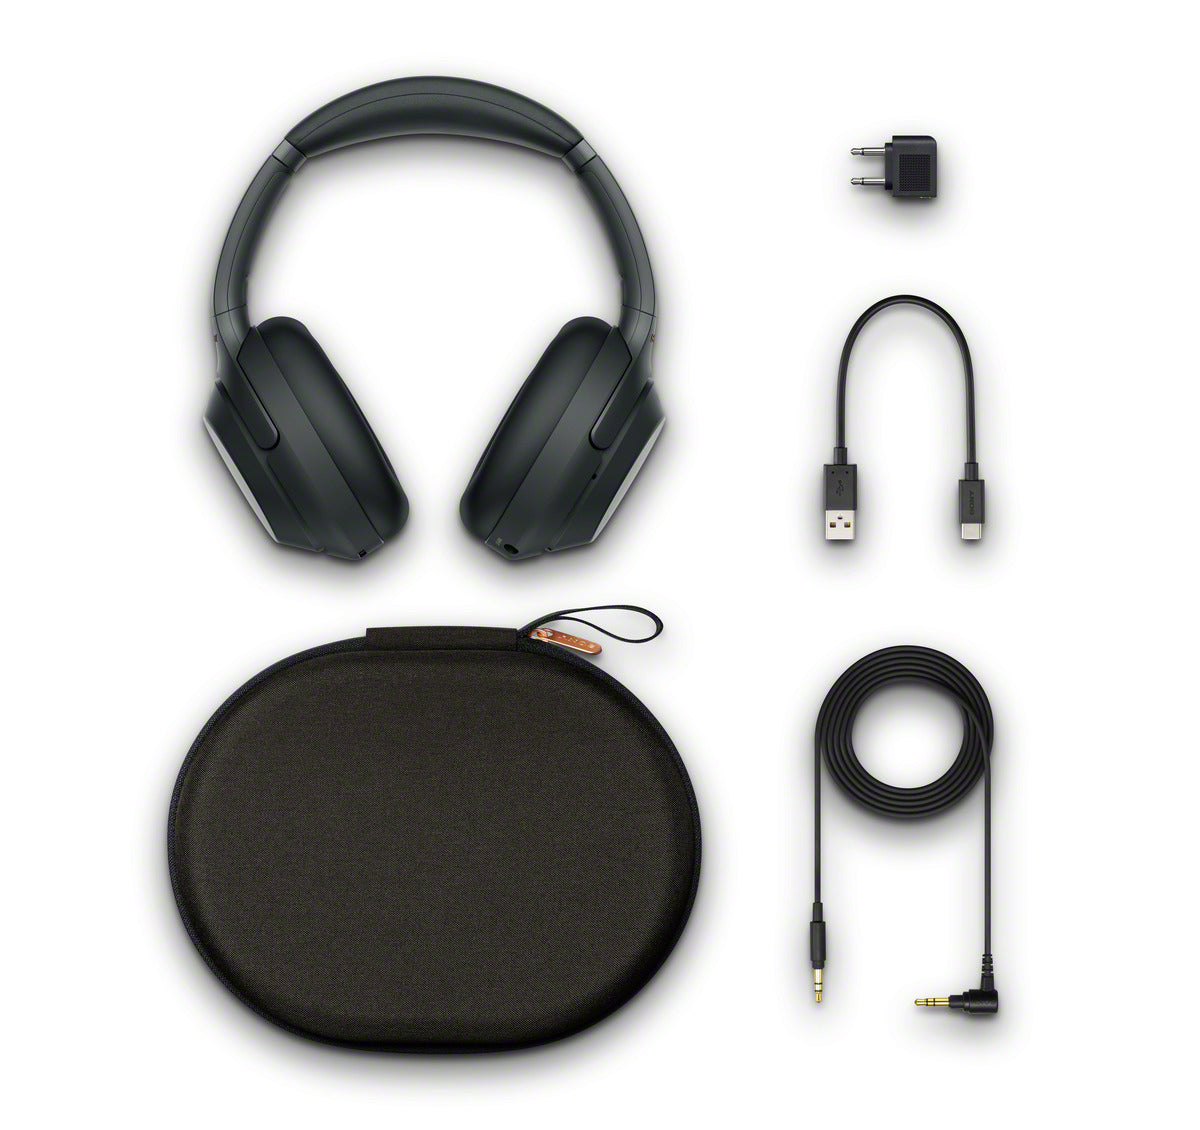 Sony WH-1000XM3 - Jaben - The Little Headphone Store